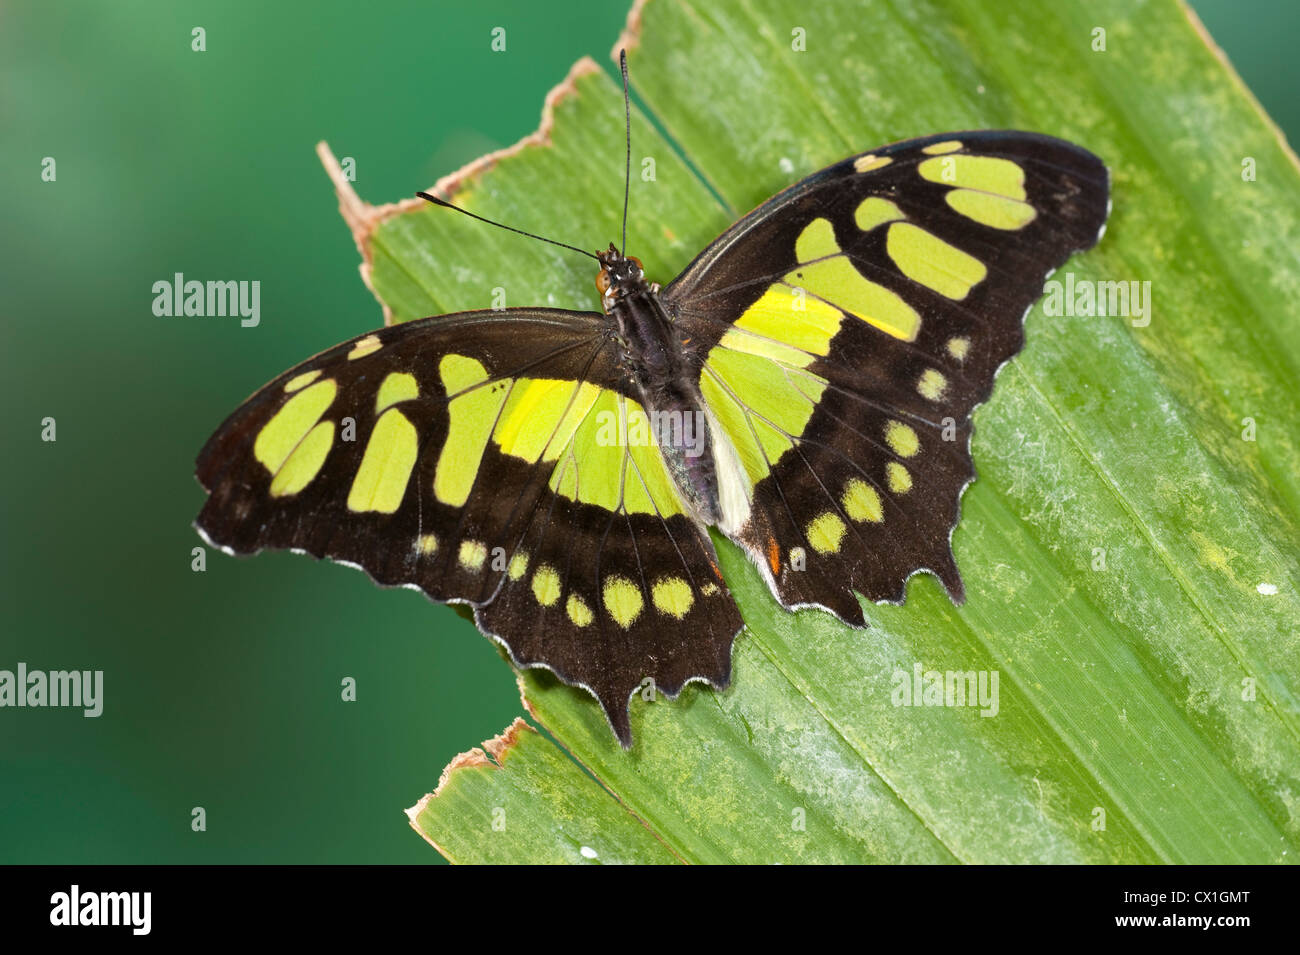 Malachite Butterfly Siproeta stelenes South America wings open green and brown colour - Stock Image